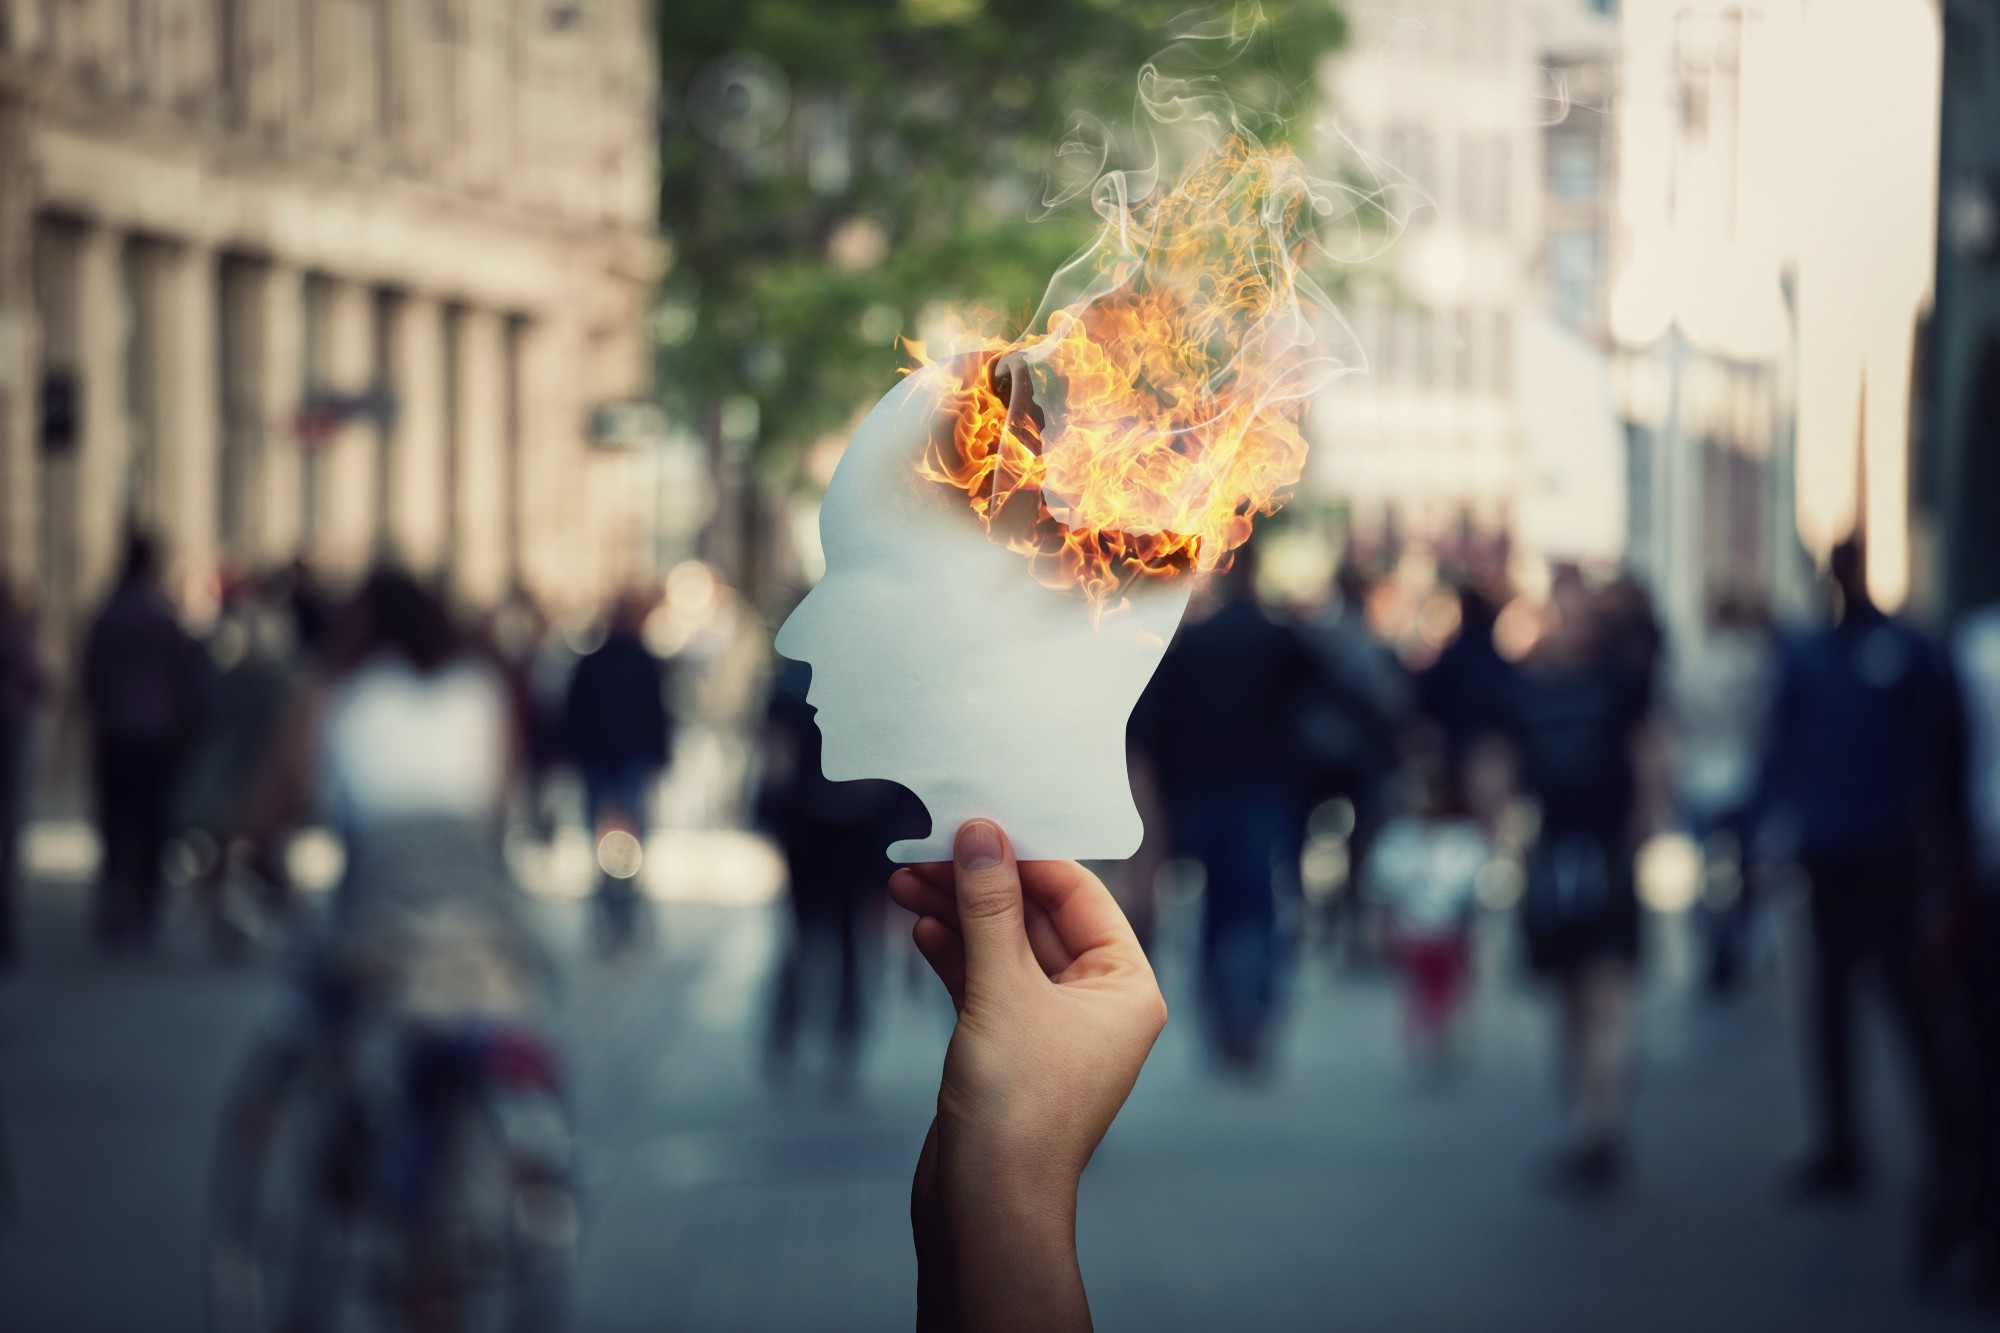 Burnout and stress concept as person hand holds a burning, human head shaped, paper sheet on a crowded street.